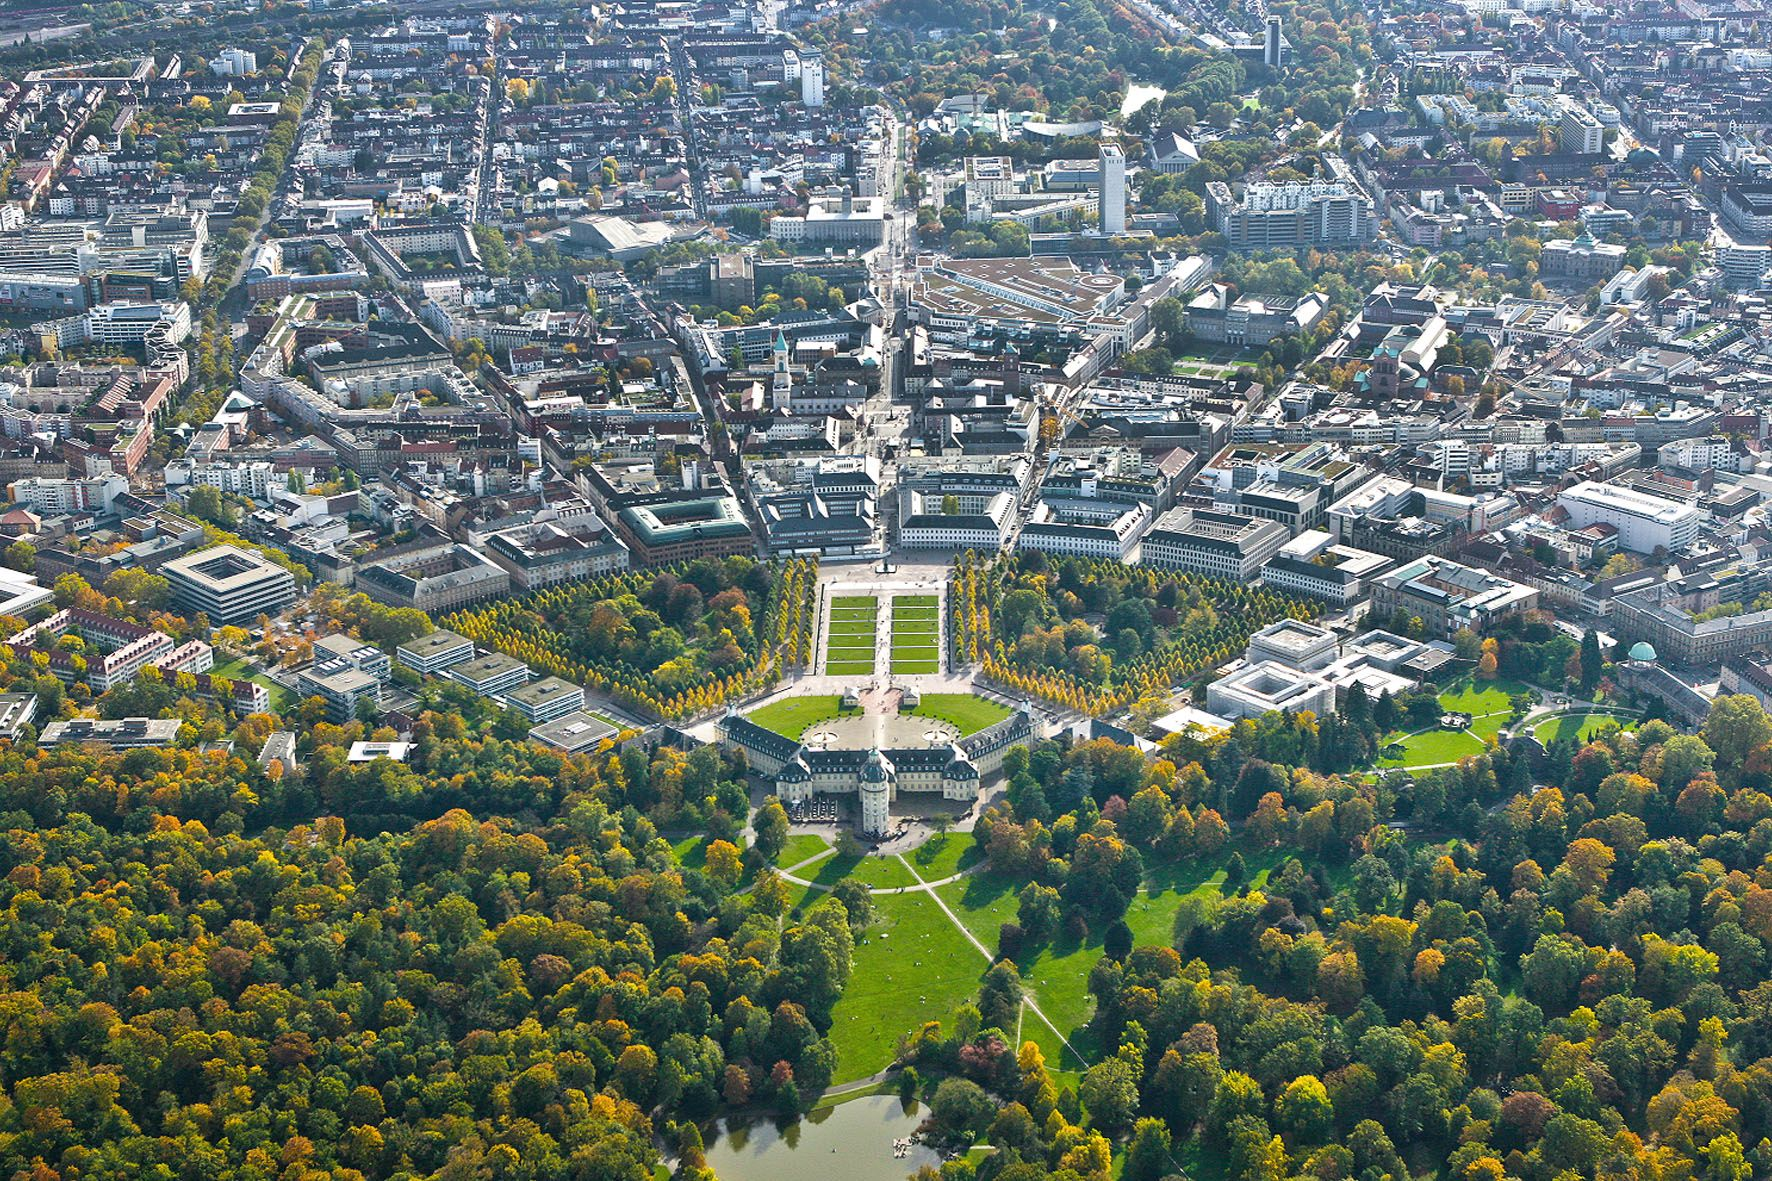 aerial view of karlsruhe laid out from 1715 karlsruhe an original hunting tower of 1715 was. Black Bedroom Furniture Sets. Home Design Ideas